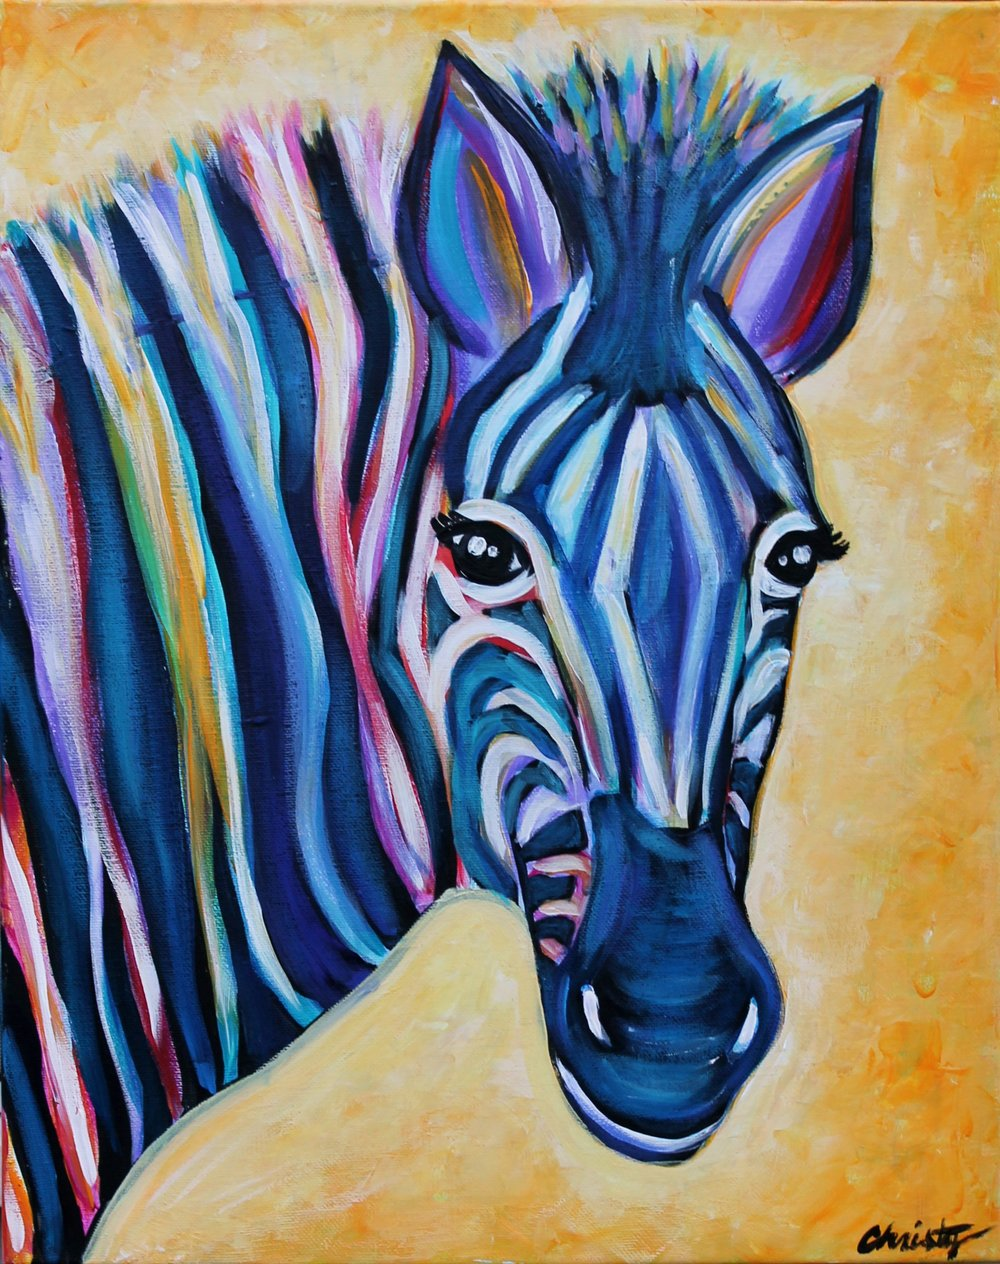 Brewmasters Nc Goldsboro Events Wine And Design Sassy Zebra